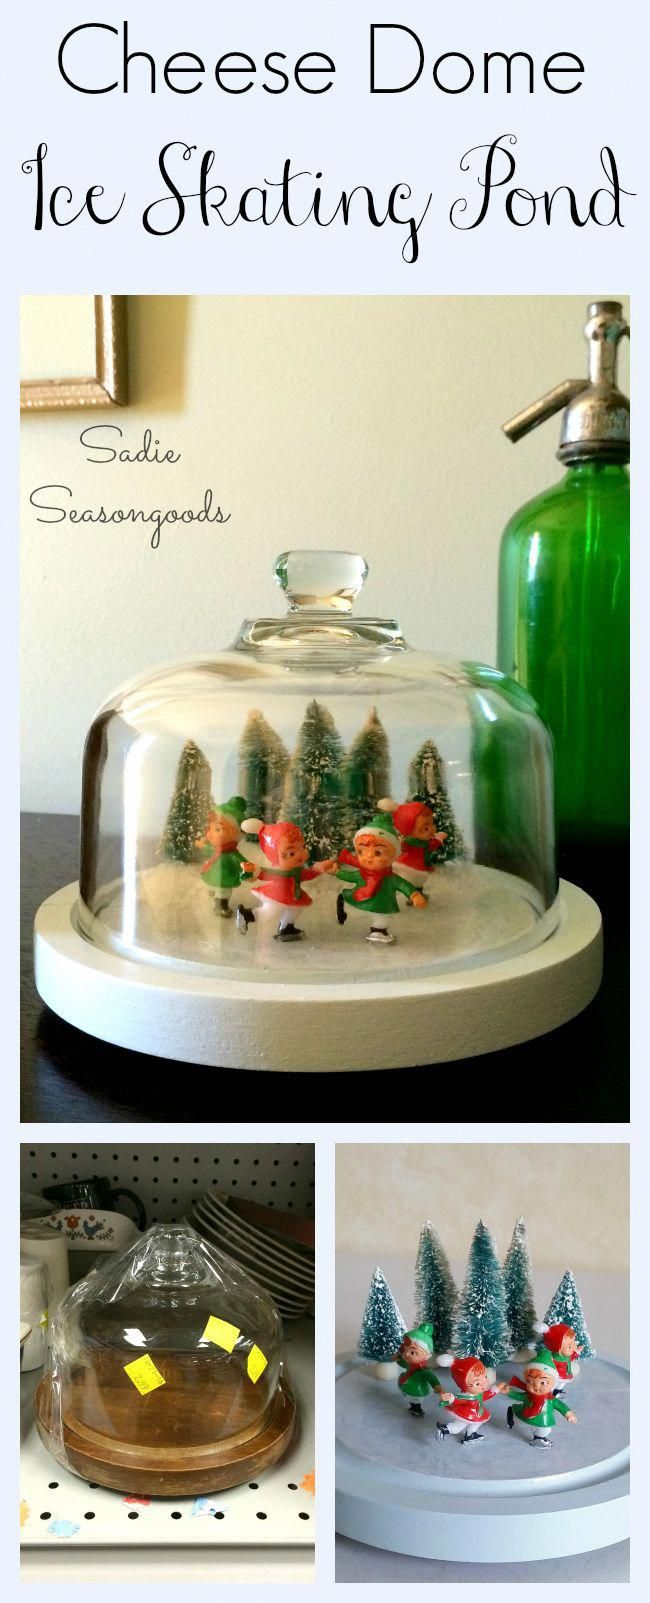 Creating a winter scene under a thrift store cheese dome? Nothing new. But creating a frozen ice skating pond, straight from a vintage postcard or Currier & Ives? Now THAT'S new! Such a unique Christmas decoration and a darling way to upcycle or repurpose that old cheese dome (or cloche?). Vintage bottlebrush trees and adorable ice skater figurines really make this come alive. #SadieSeasongoods #HomeforChristmas #vintagechristmas